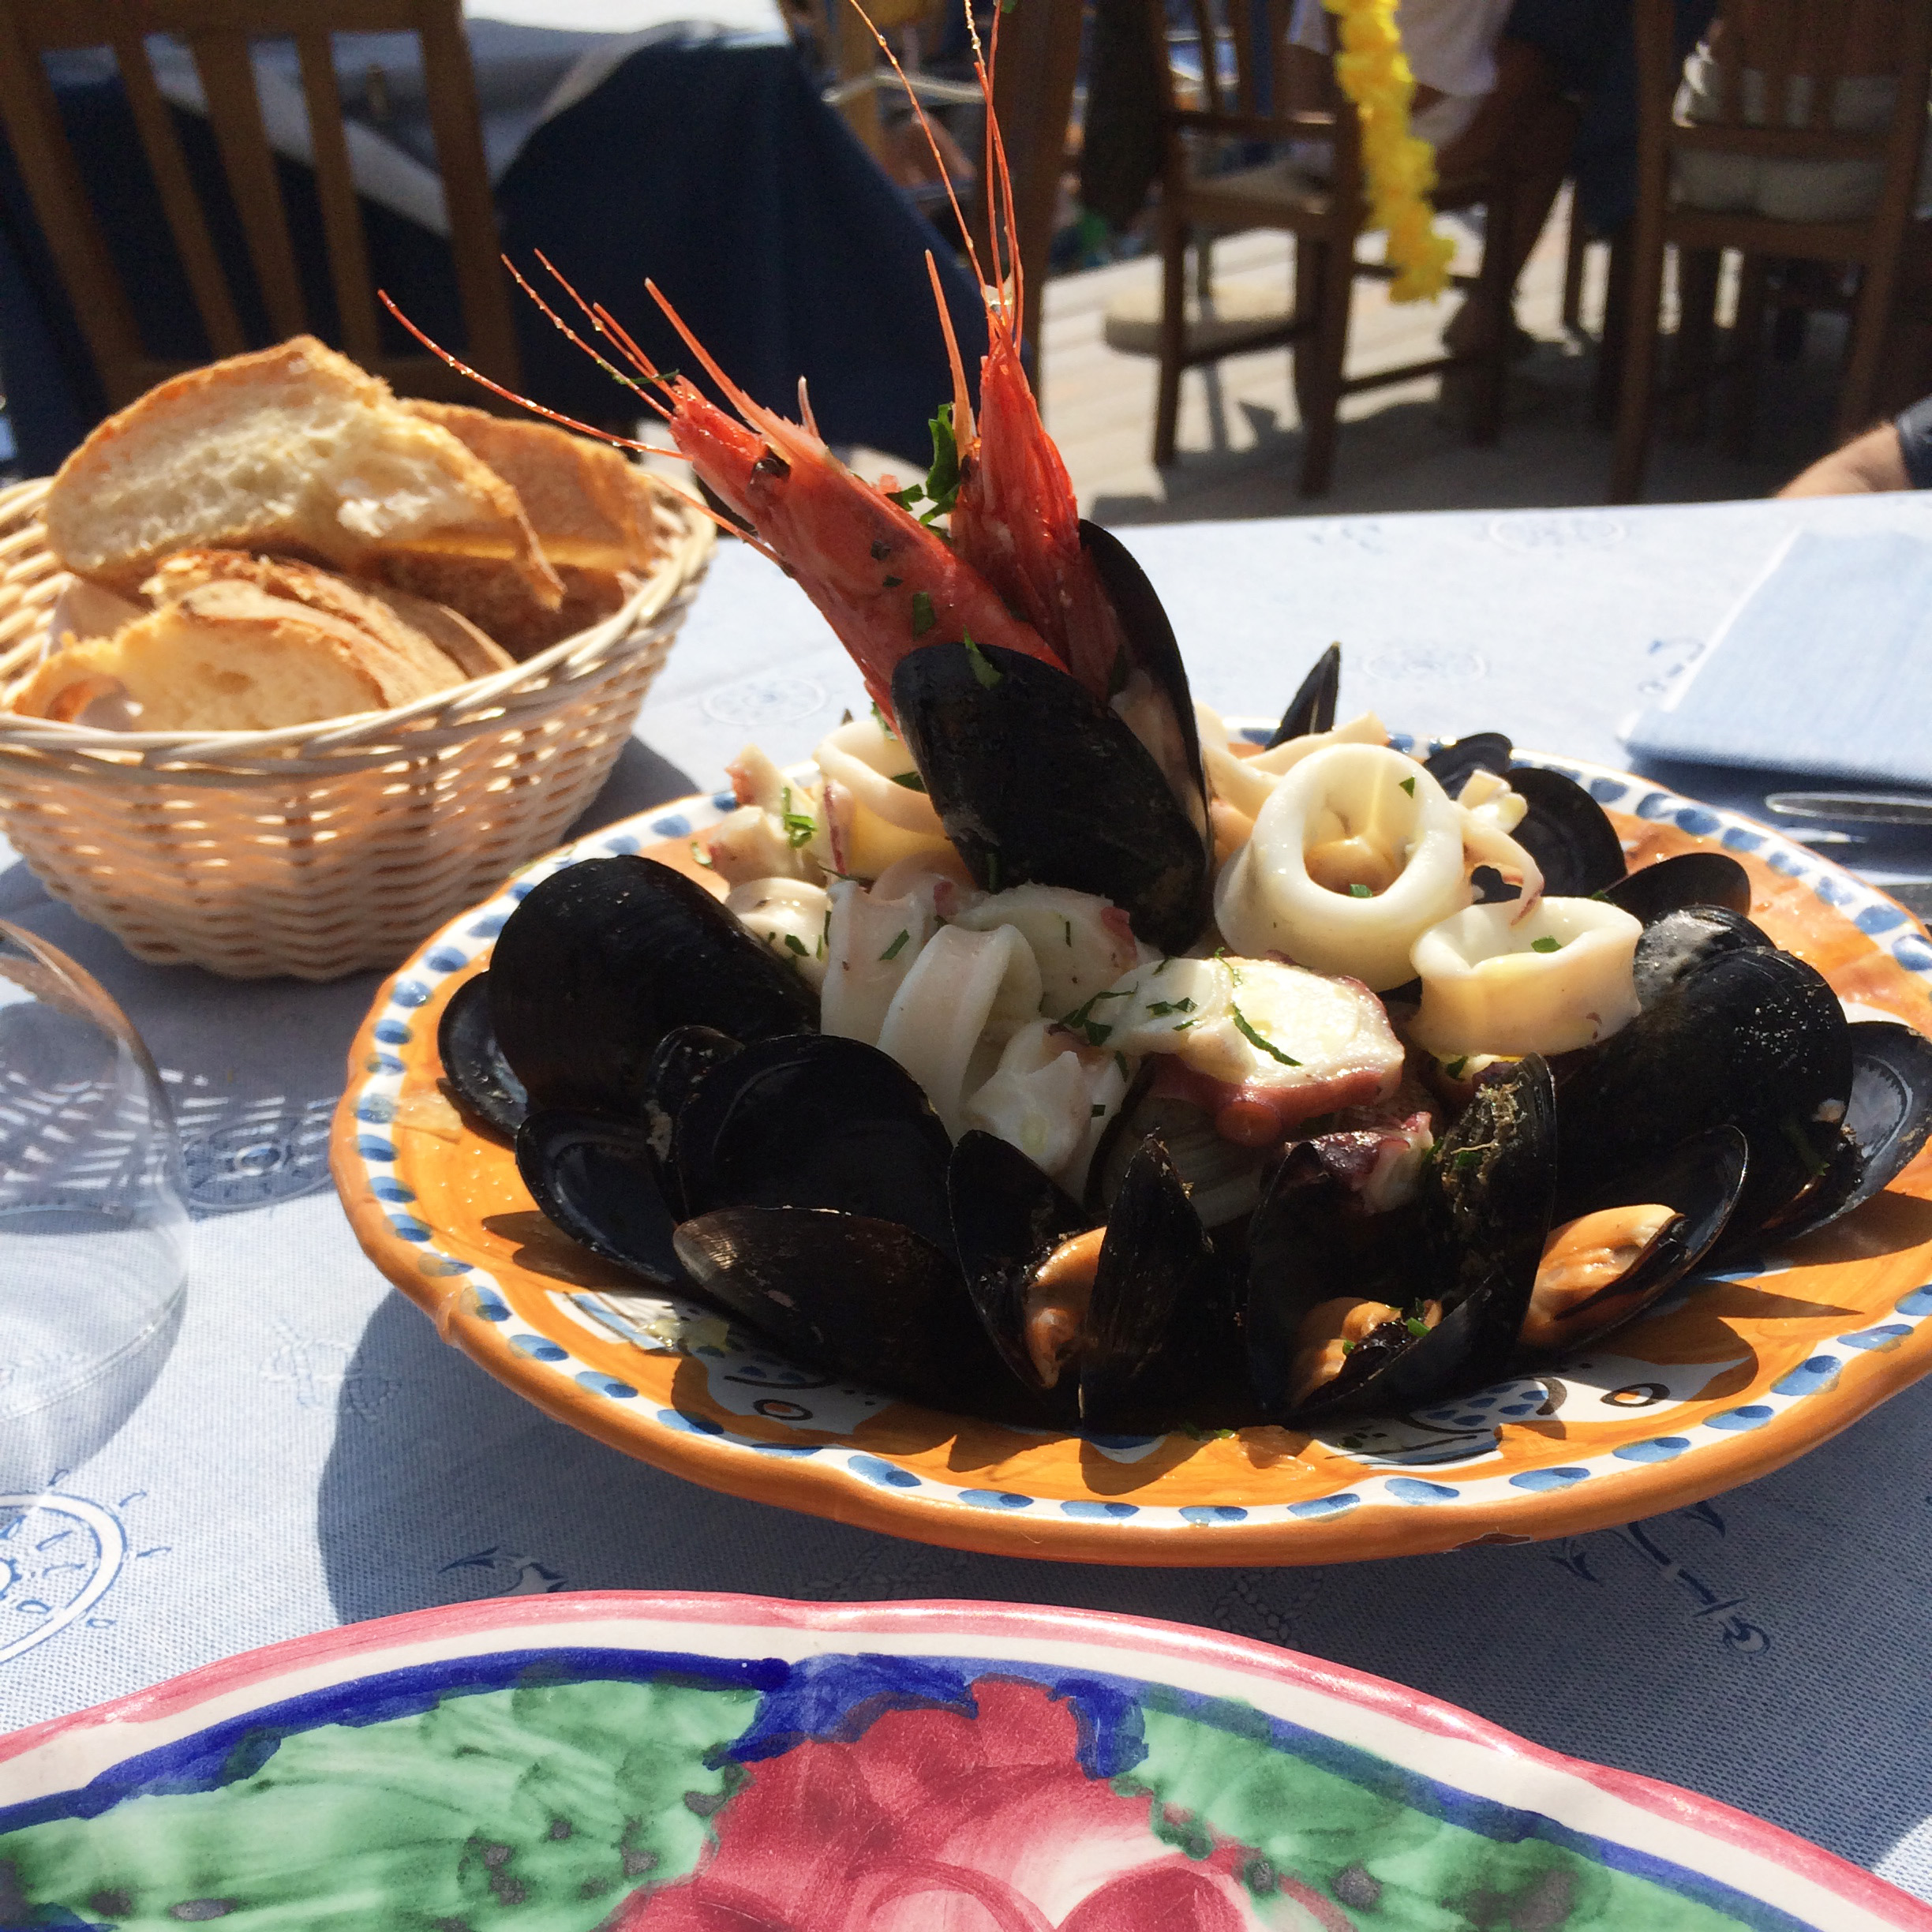 Italian summers on the amalfi coast, italian seafood. Photo by Lisa van de Pol, Italian summers